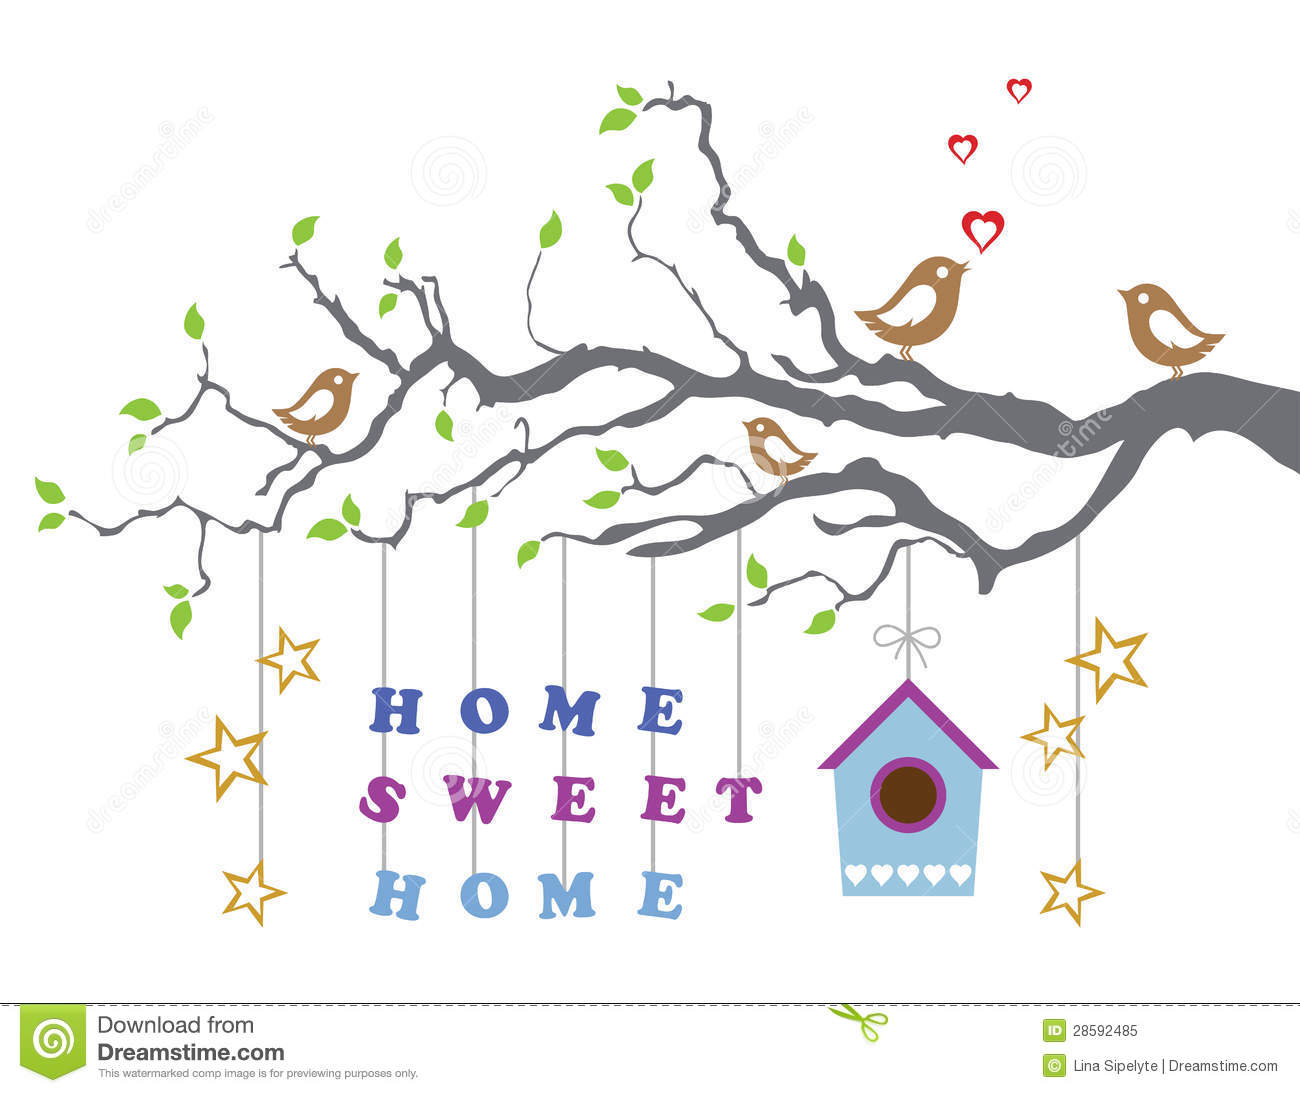 Home sweet home moving in new house greeting card stock for Achat nouvelle maison